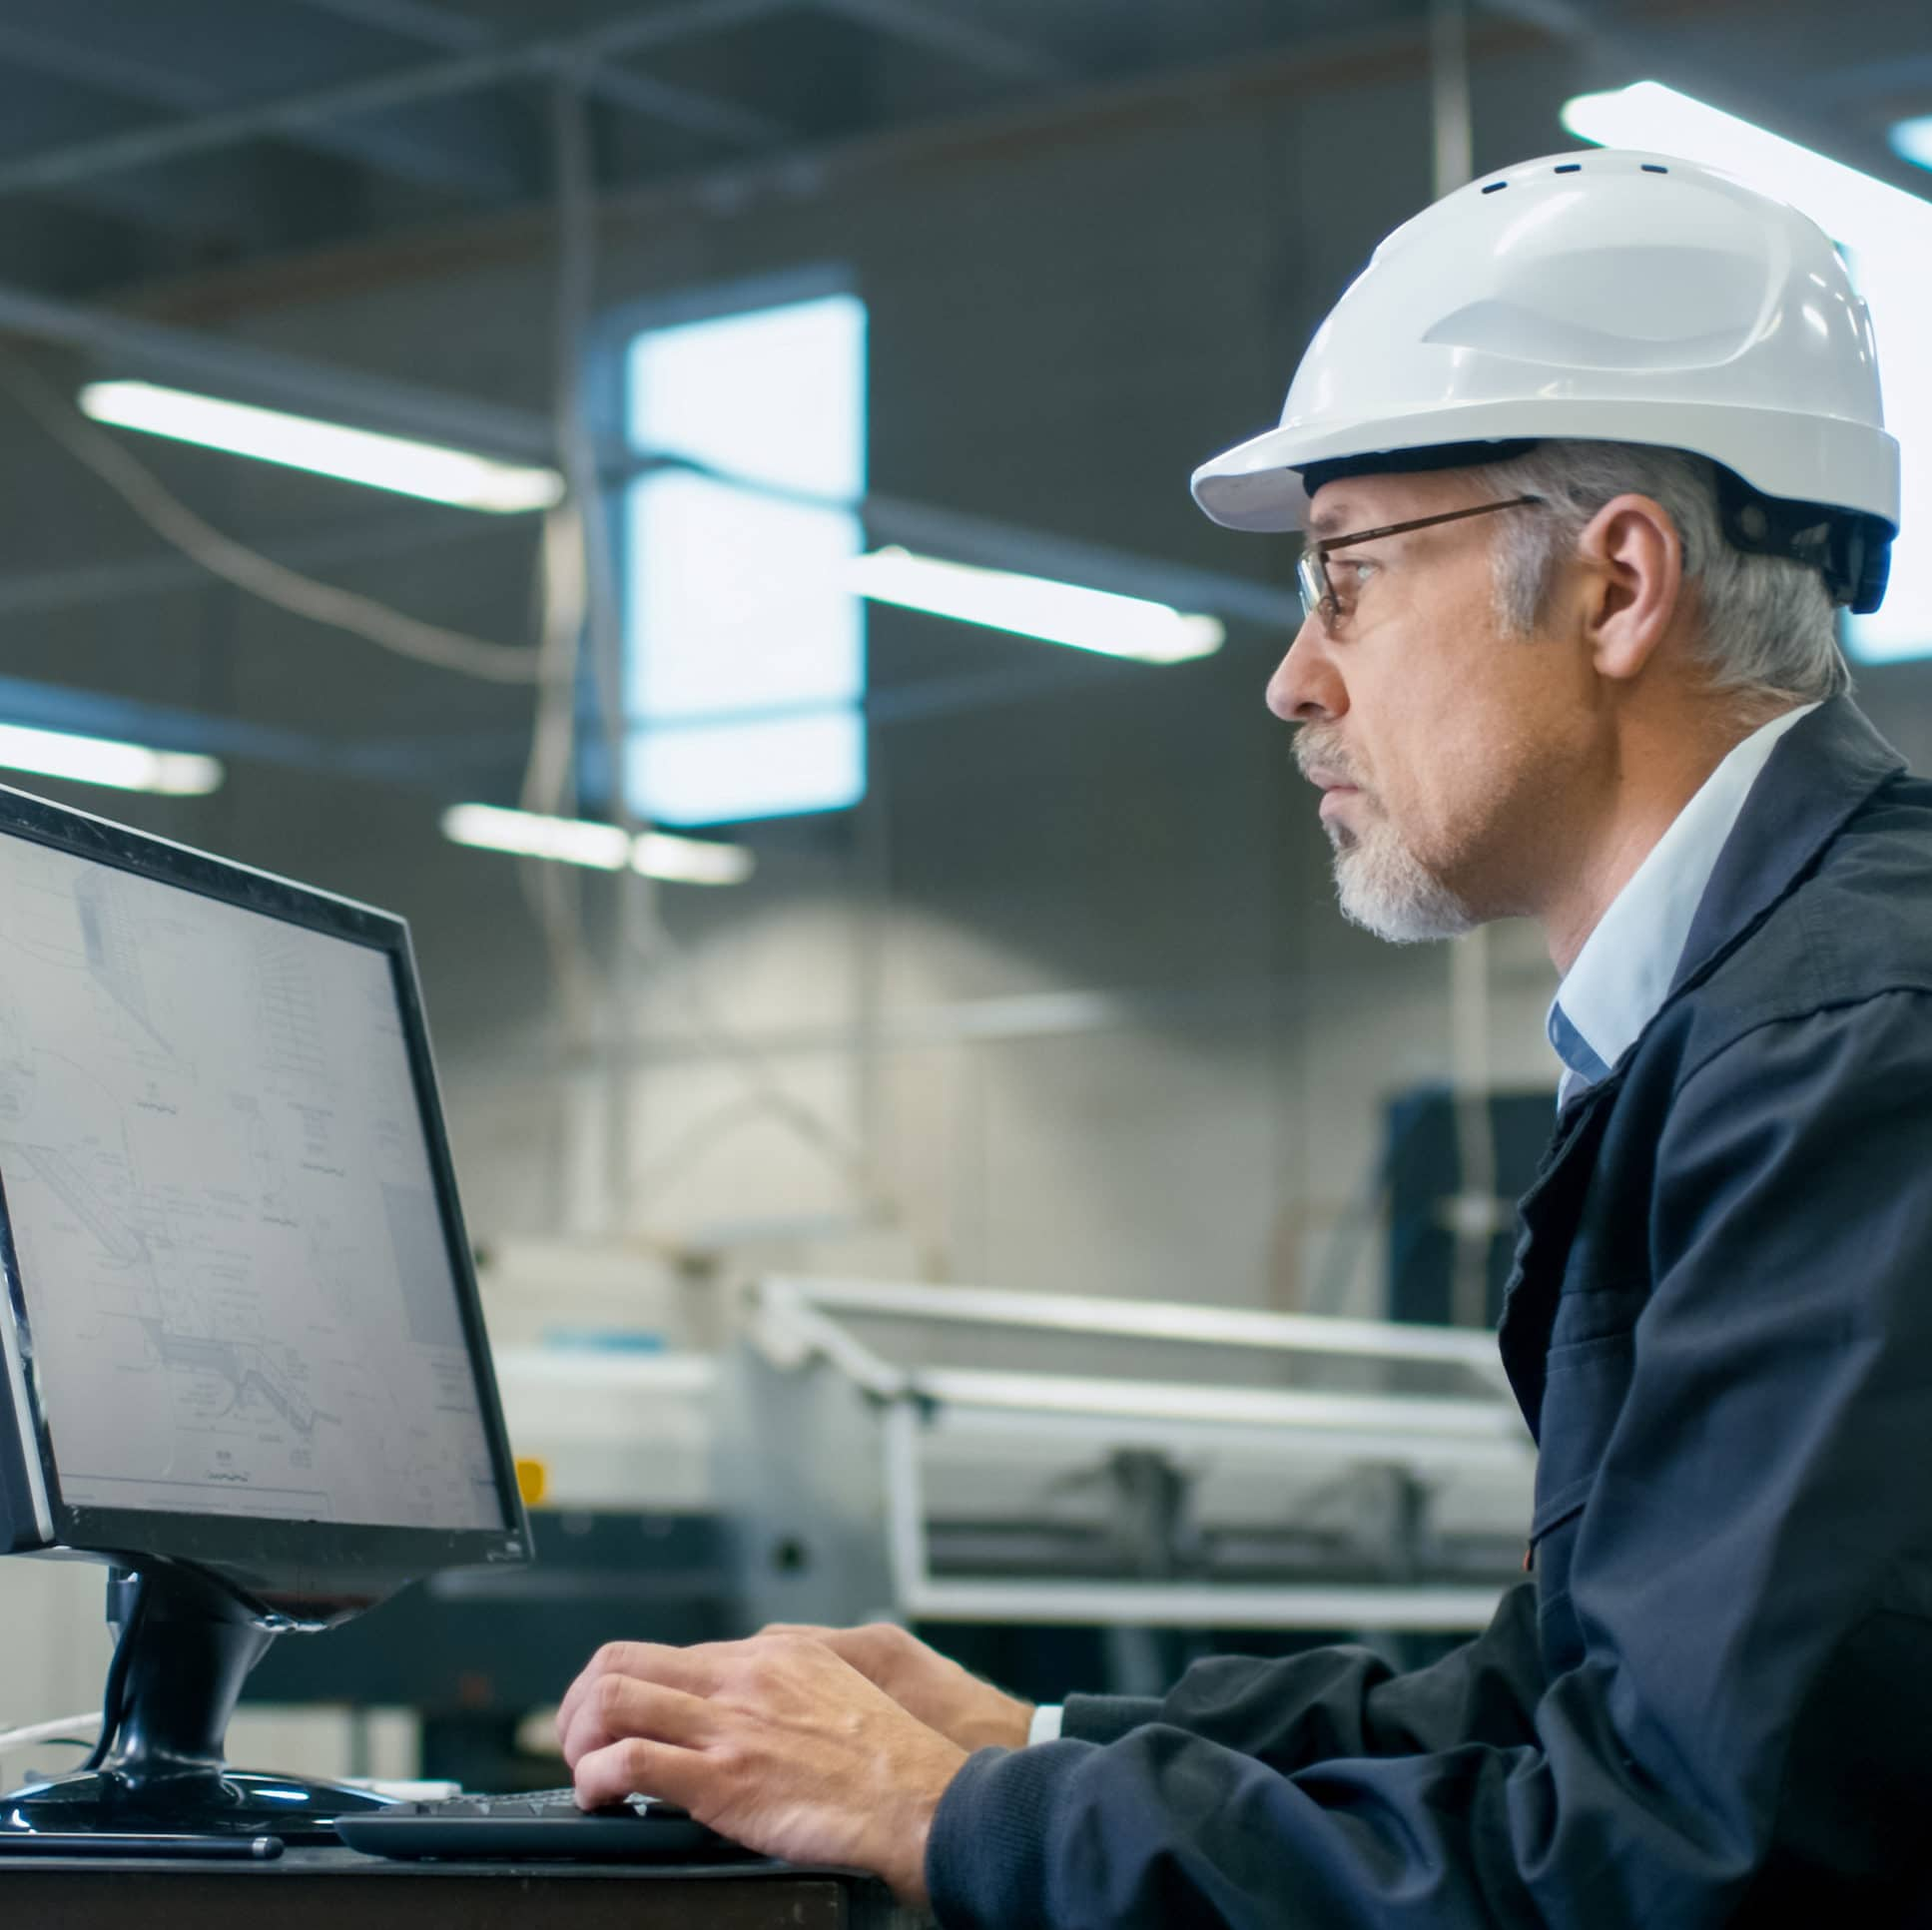 Engineer in hardhat and glasses working on a desktop computer.